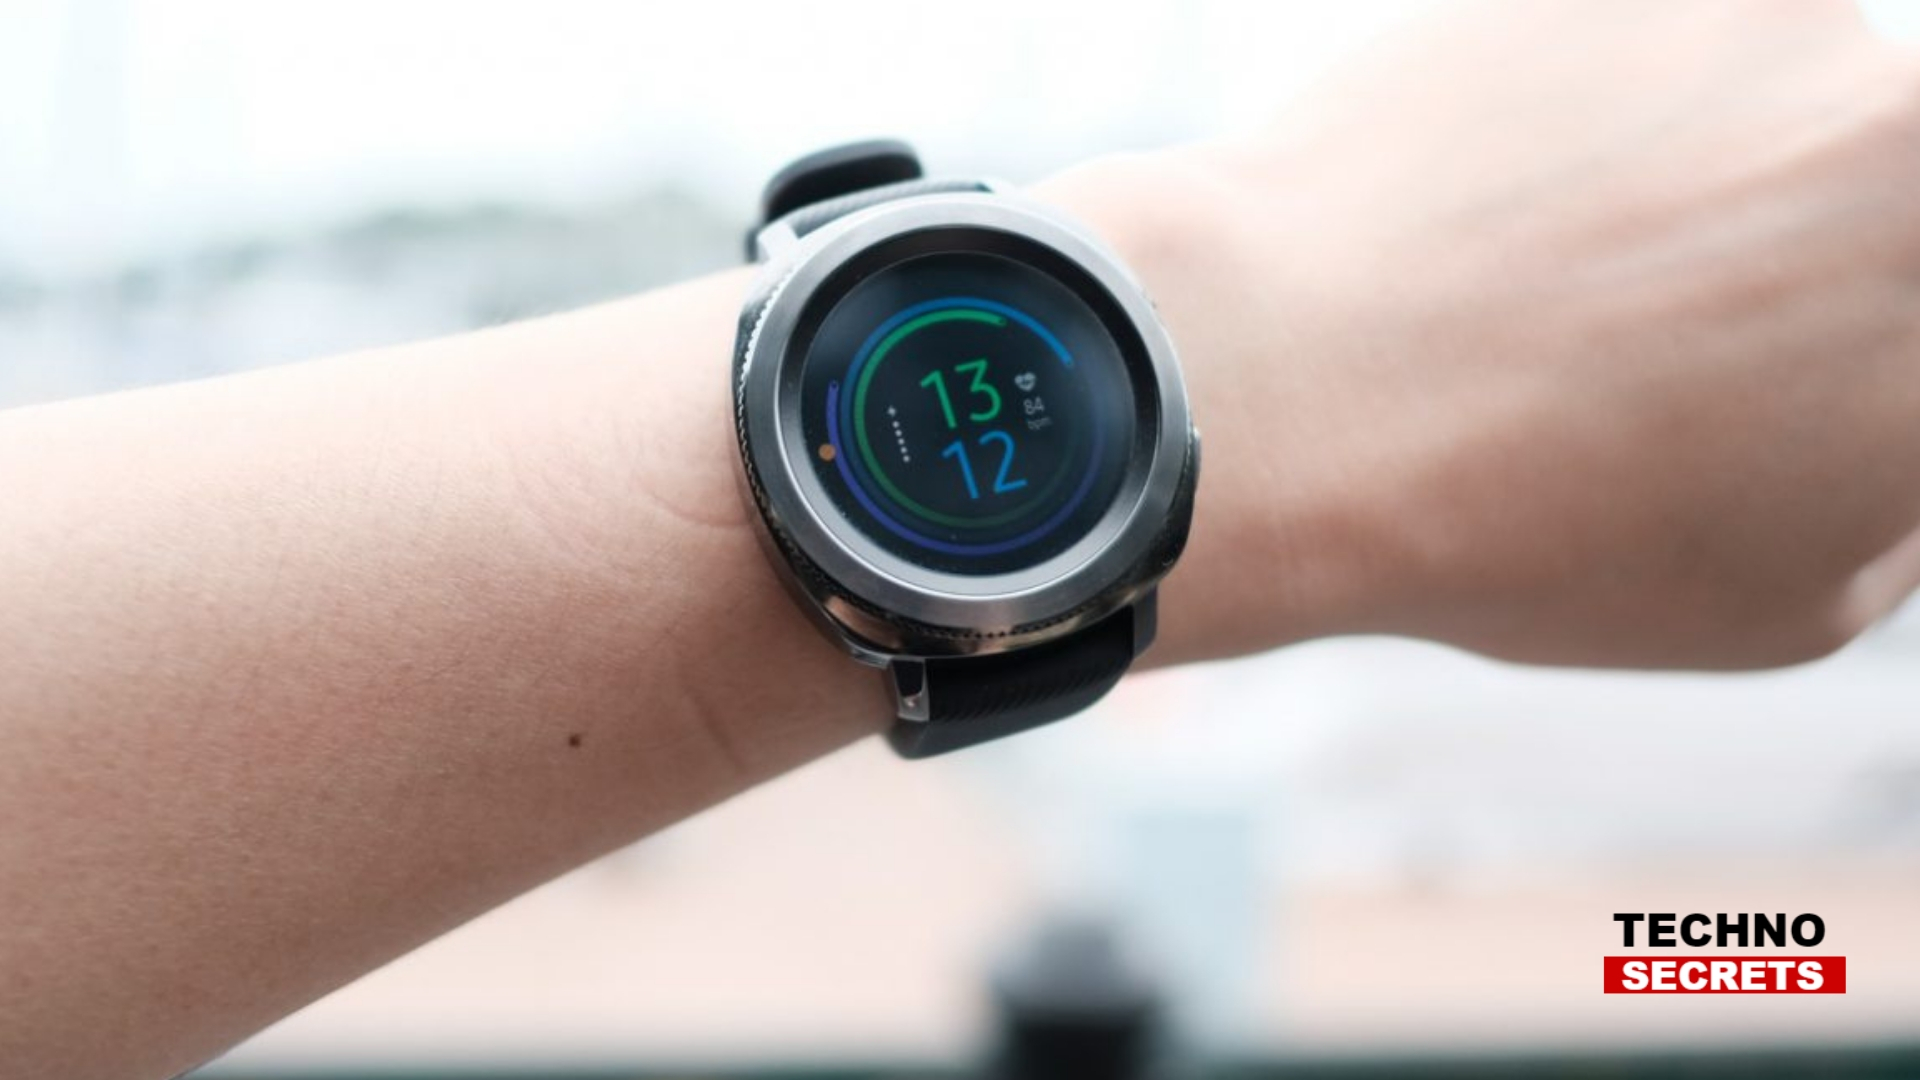 Samsung To Reveal Smartwatch With In-display Fingerprint Scanner